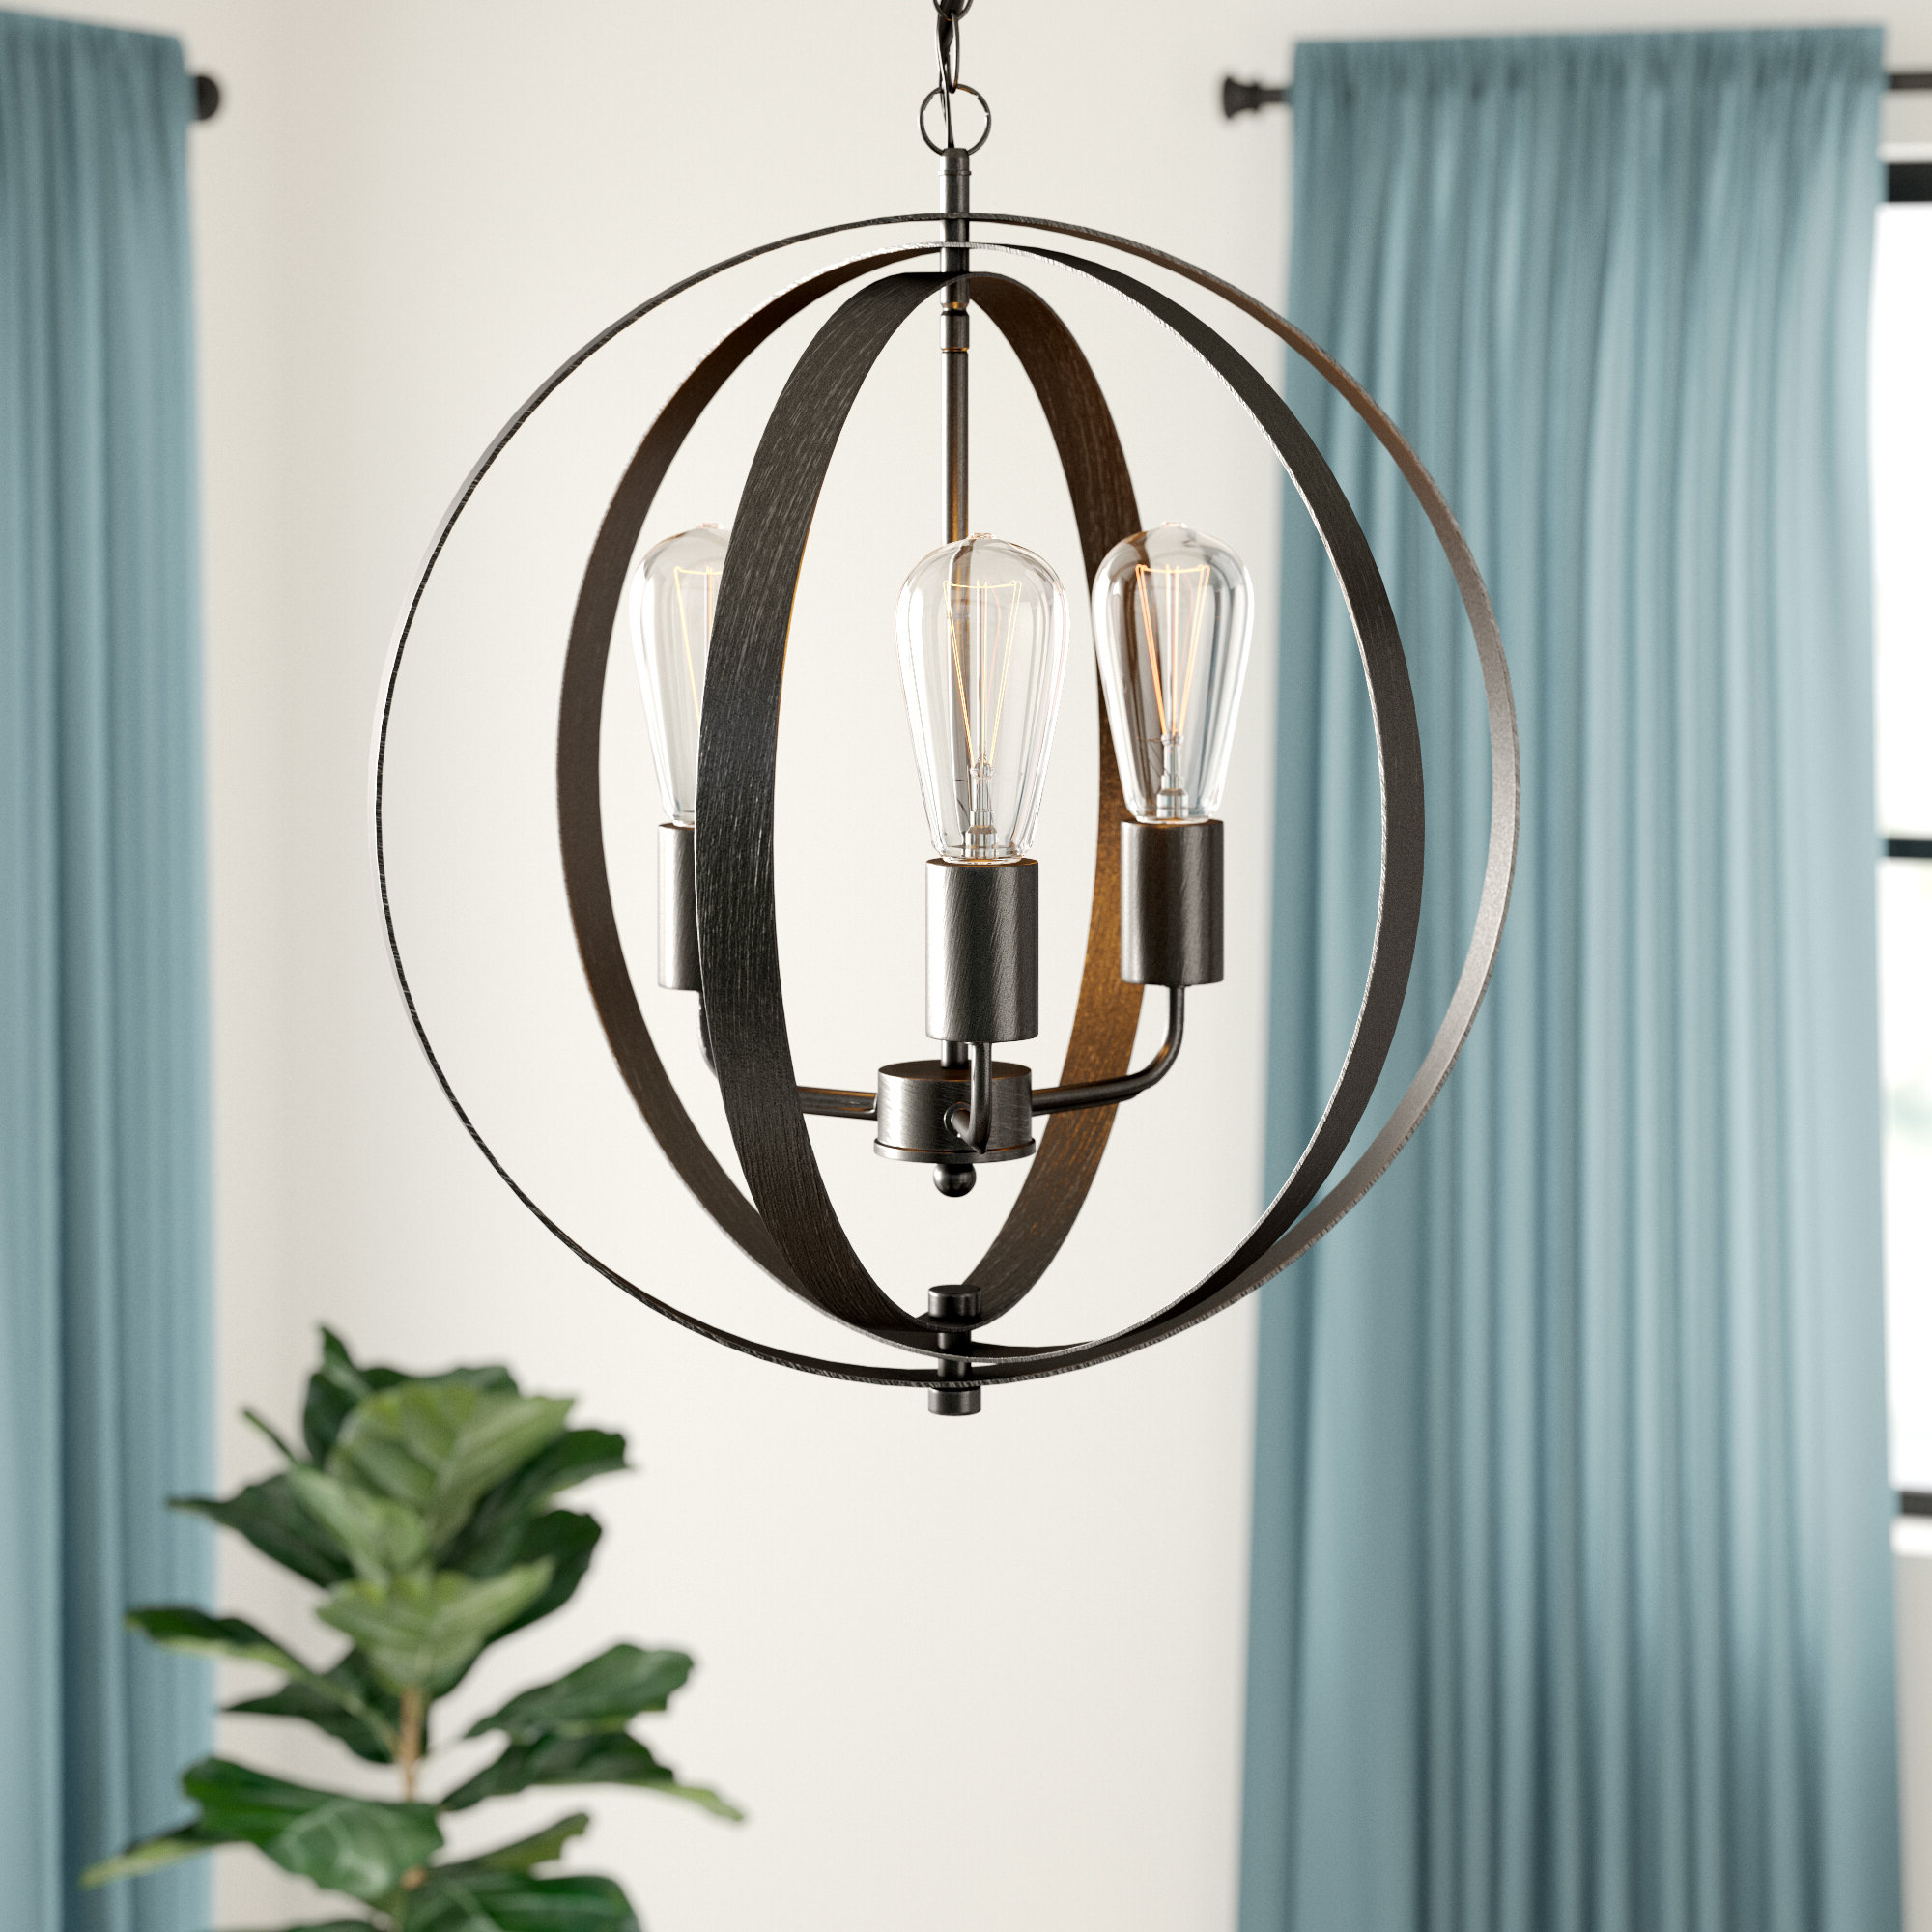 Most Recently Released Annuziata 3 Light Unique/statement Chandeliers Pertaining To Belby 3 Light Chandelier (Gallery 4 of 20)